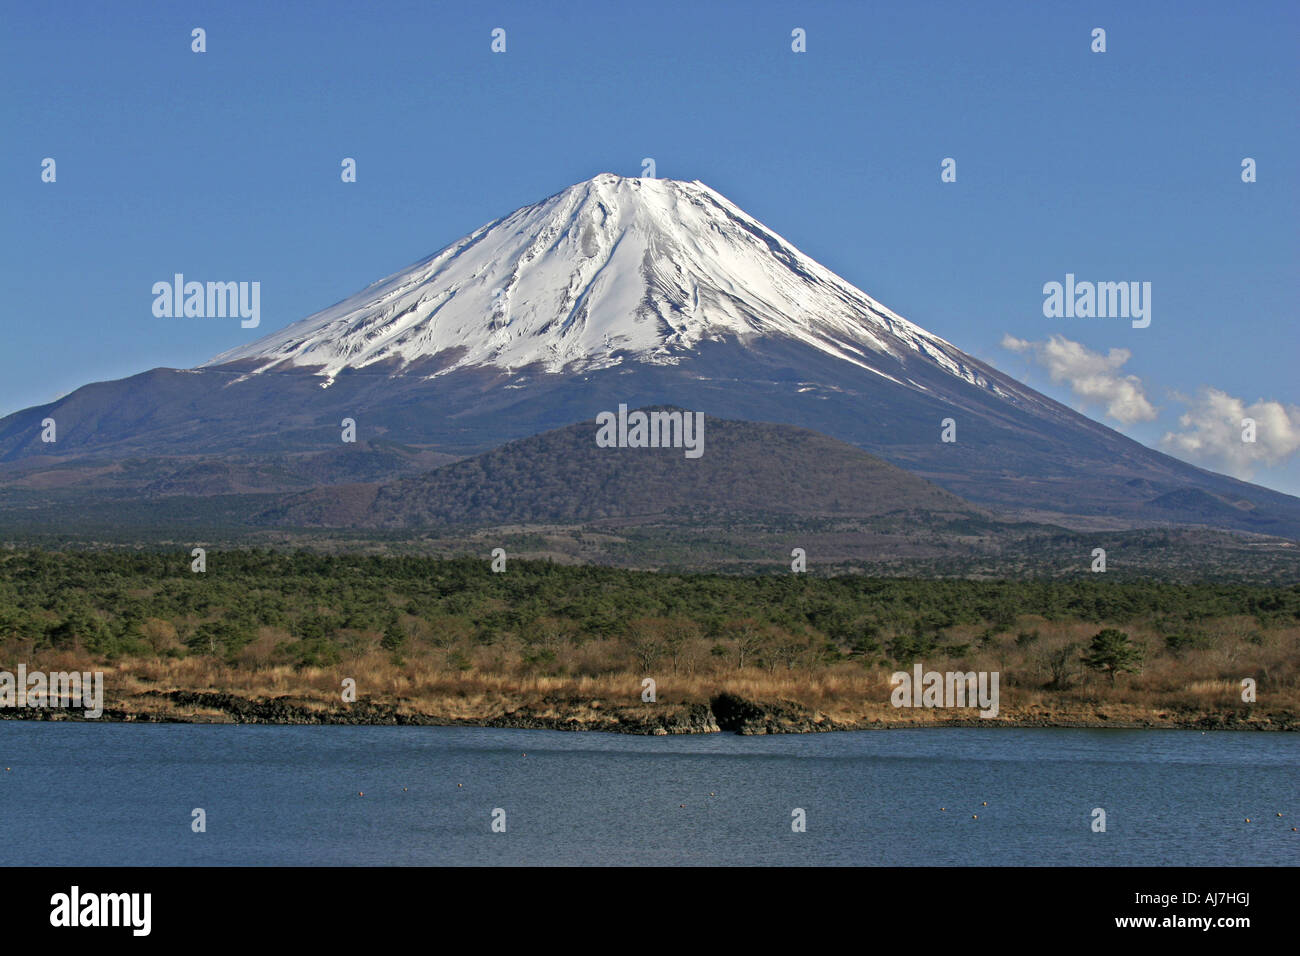 Mount Fuji view from Lake Shouji - Stock Image